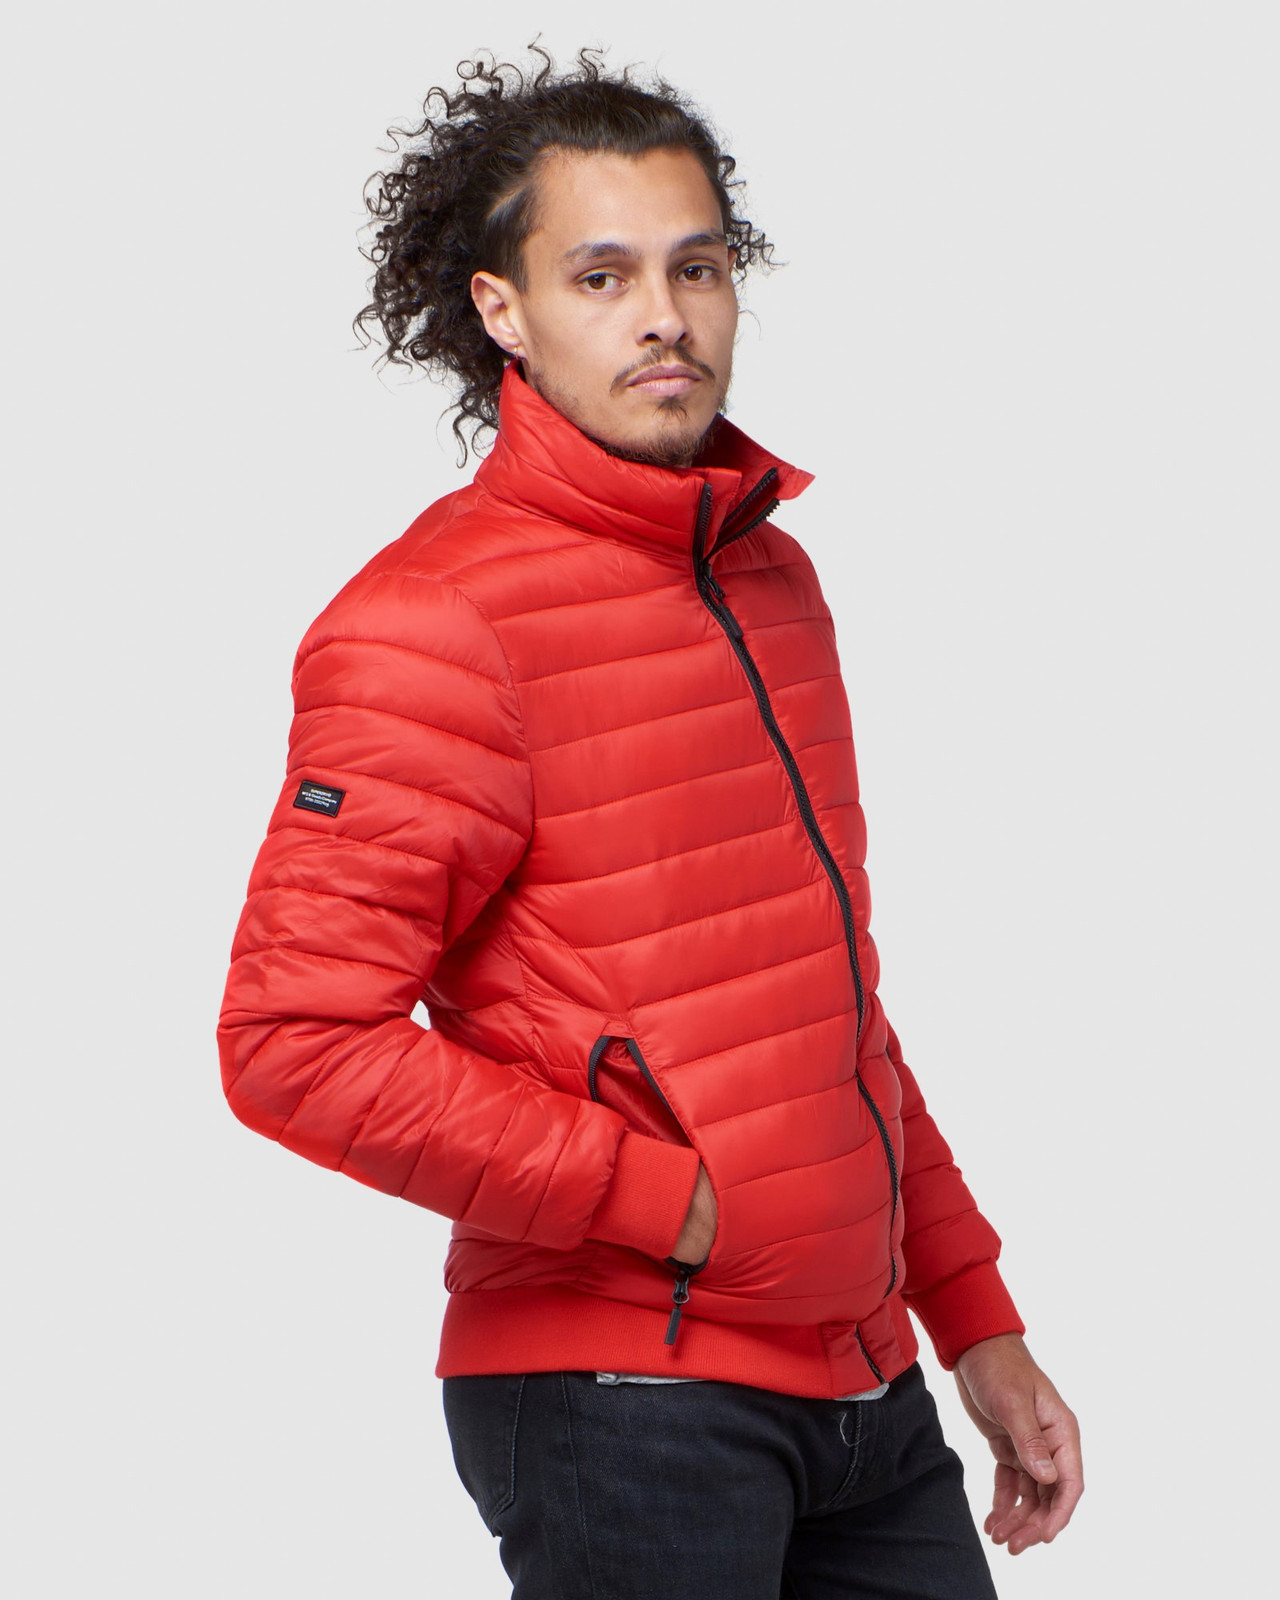 Superdry Mens FUJI BOMBER Red Puffer Jackets 5